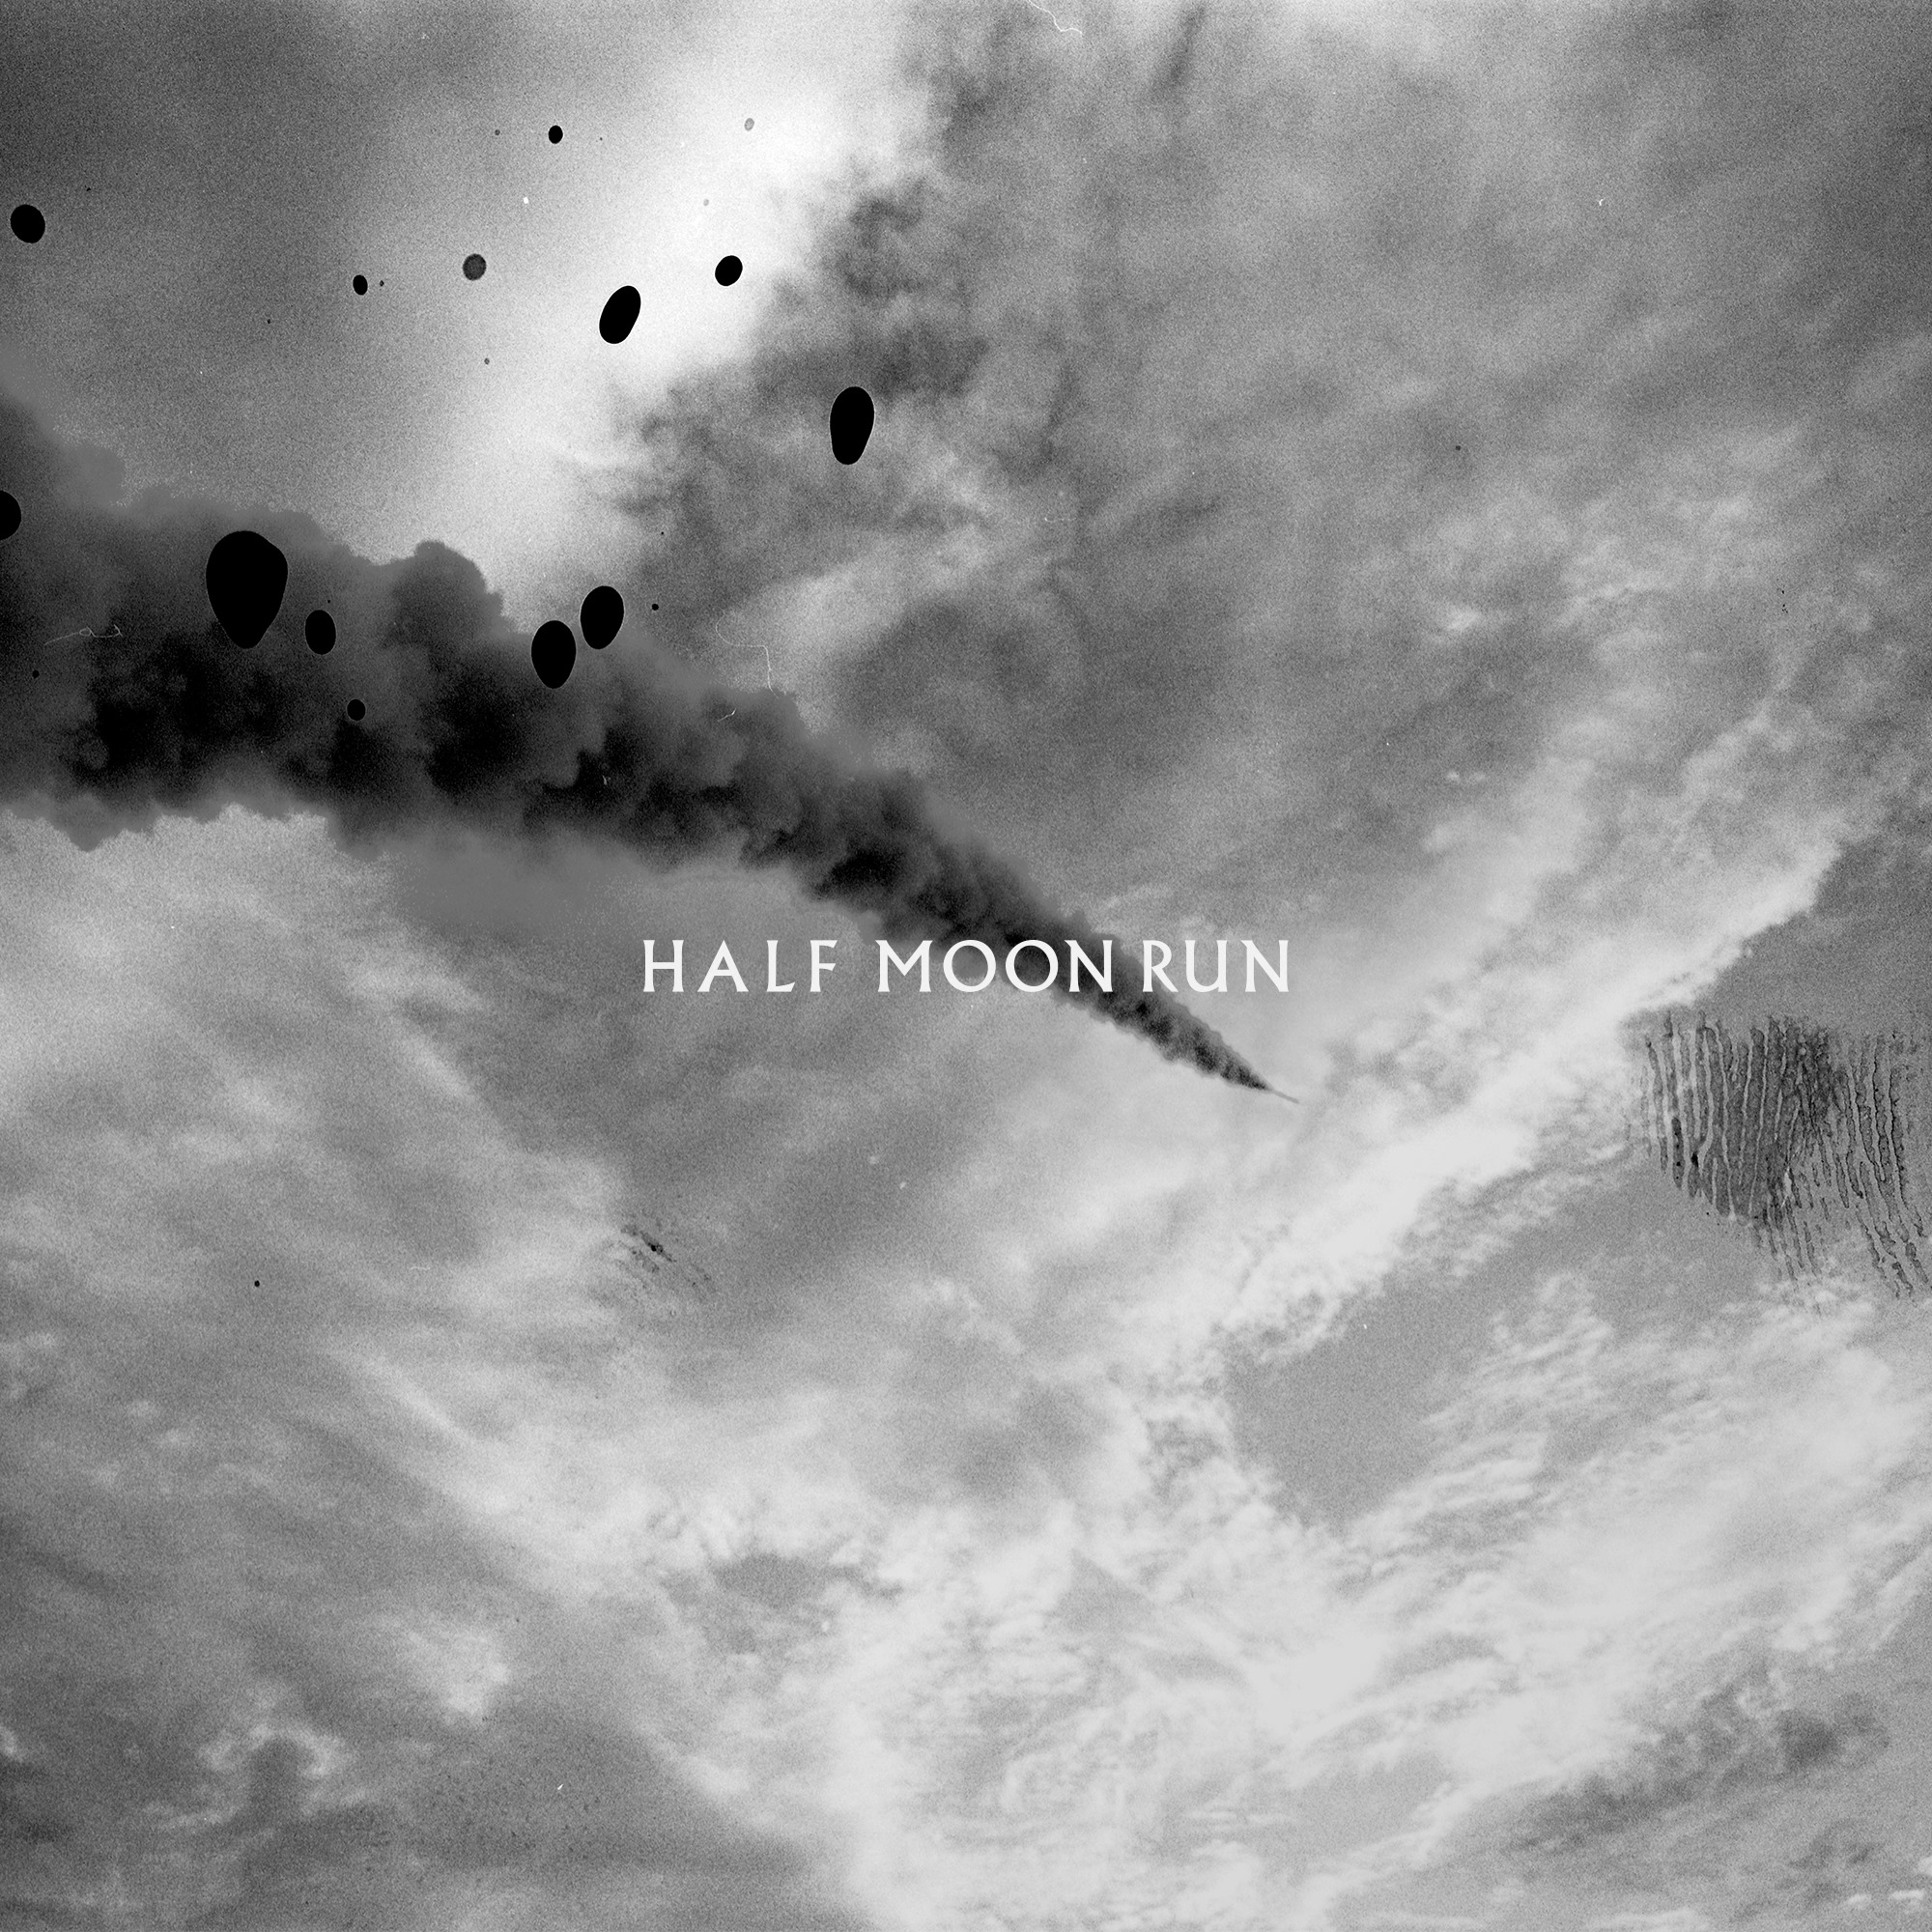 HALF MOON RUN - Then again